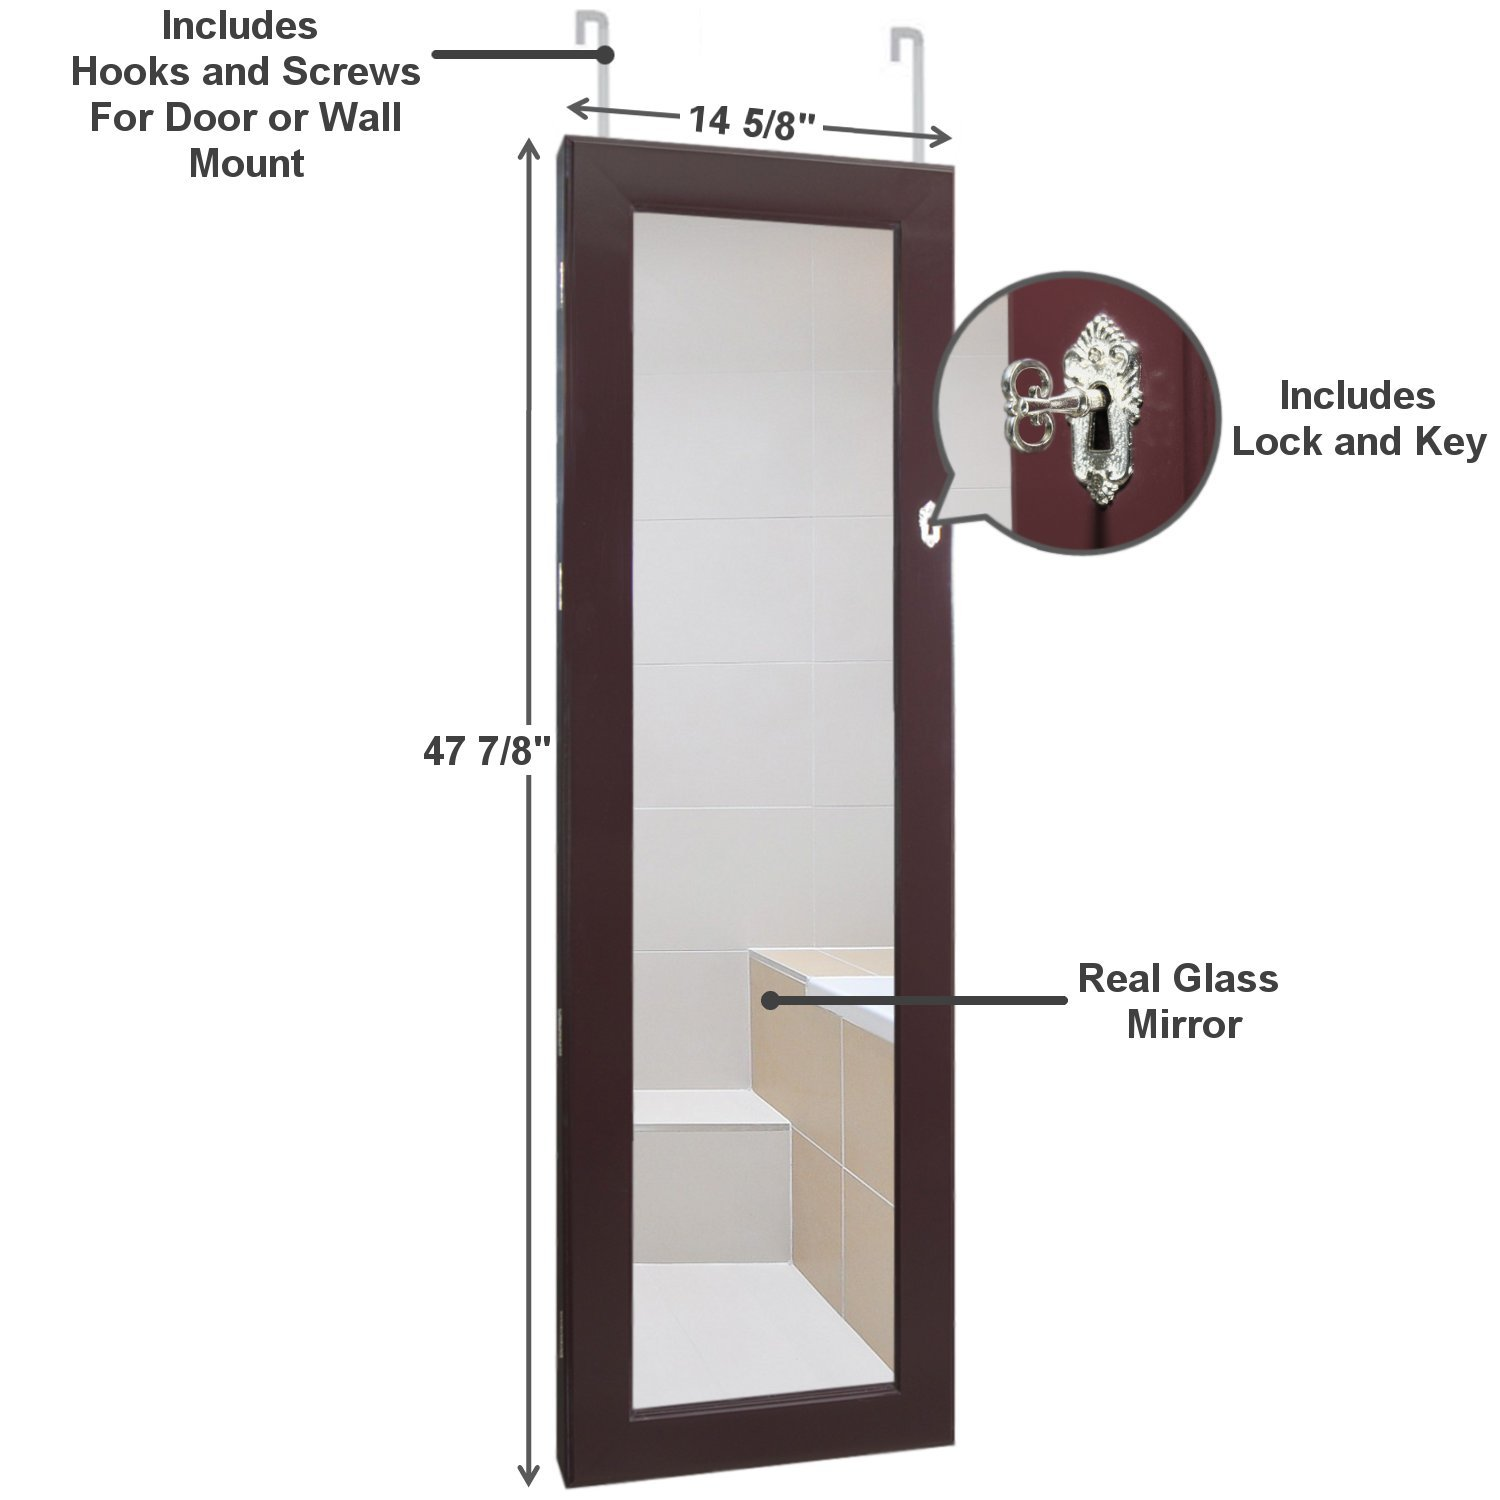 Lockable Jewelry Cabinet (Wall or Door Mount) with Full Length Mirror (Espresso Brown) Jewelry Armoire Organizer by Mayberry Health and Home (Image #3)